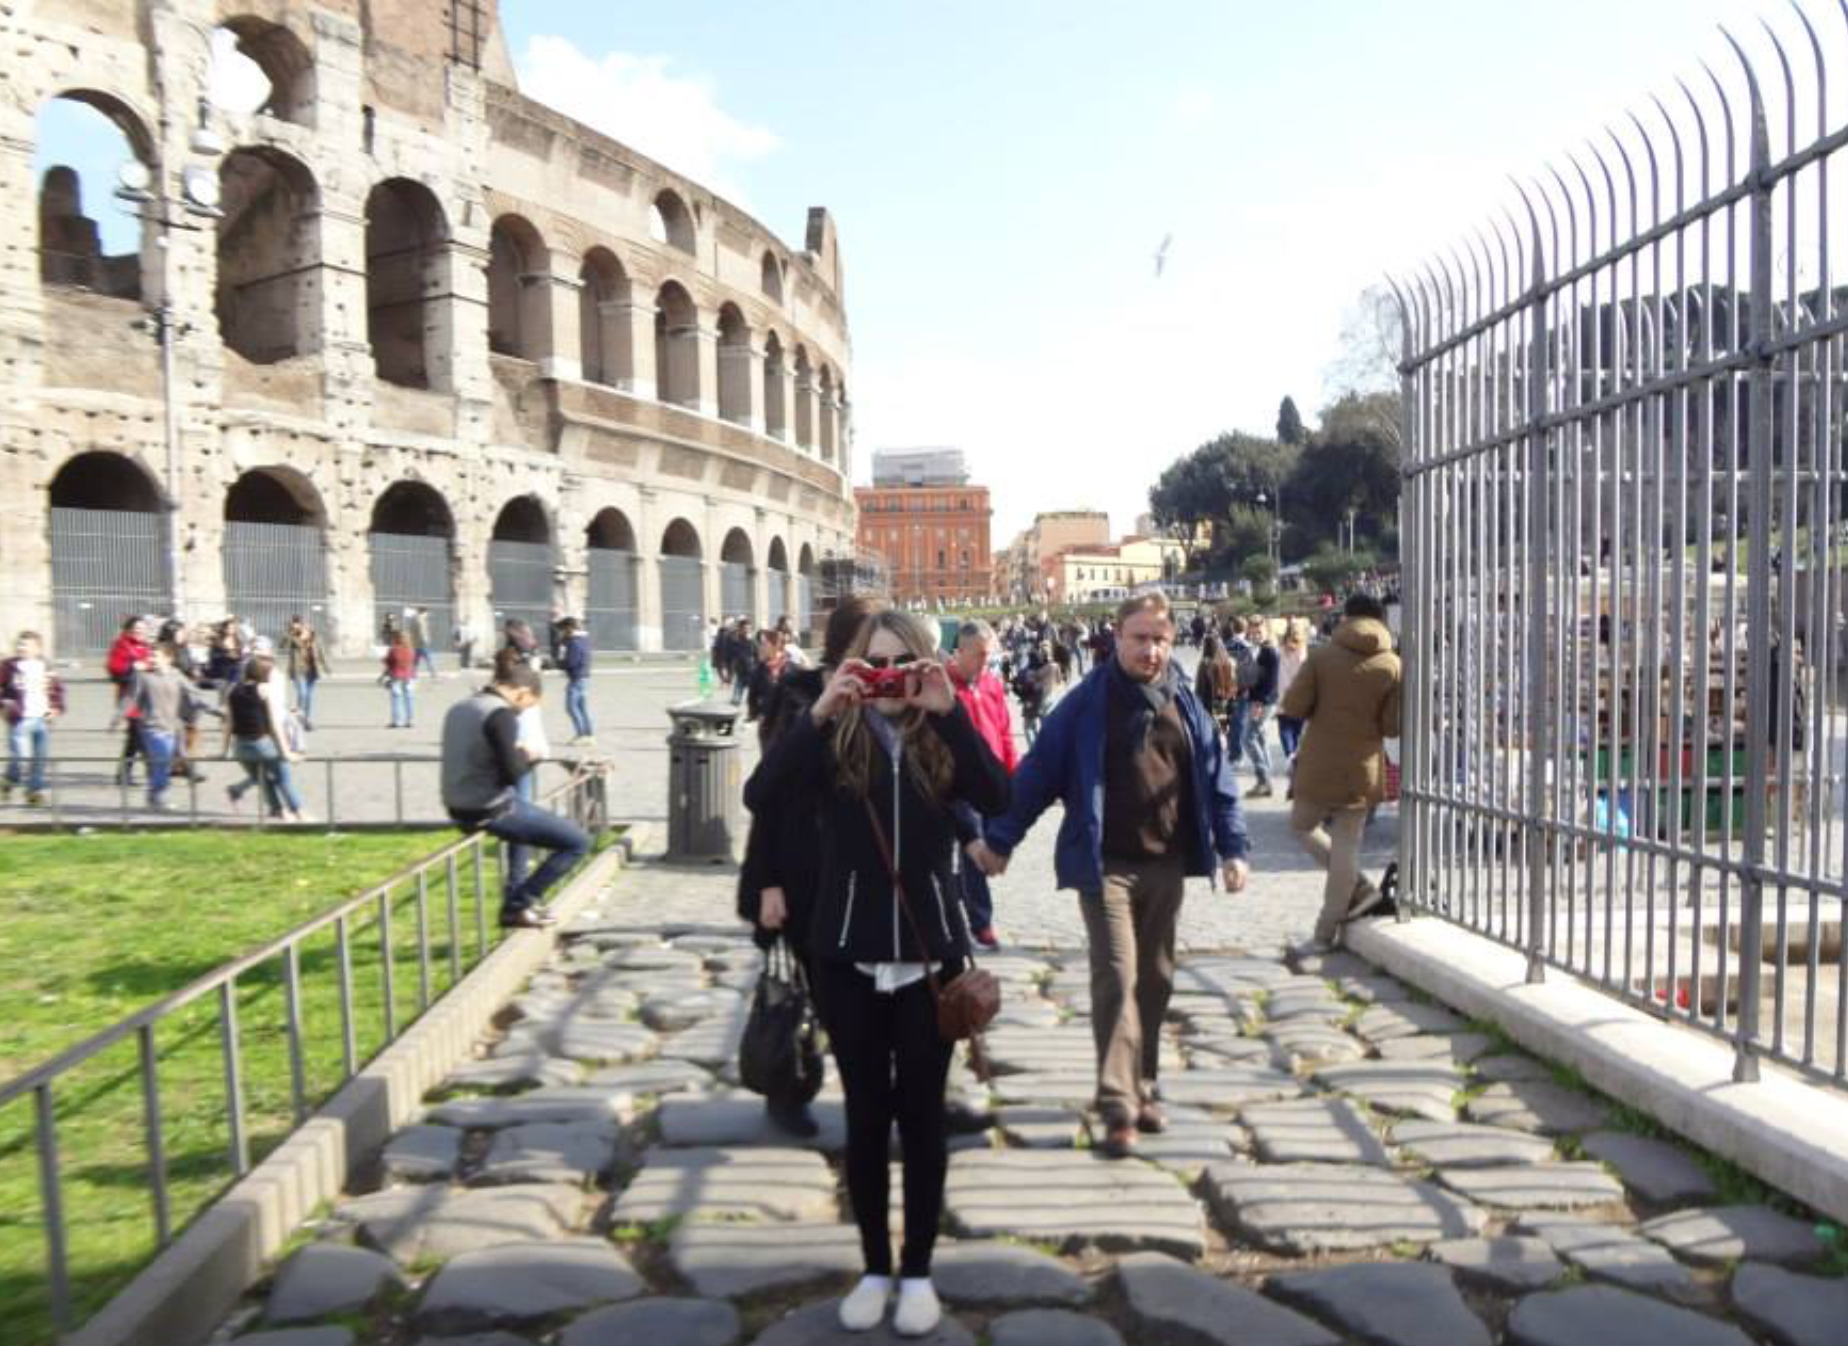 a woman stands on a cobbled street in front of the colloseum taking a photo of the person who is photographing her